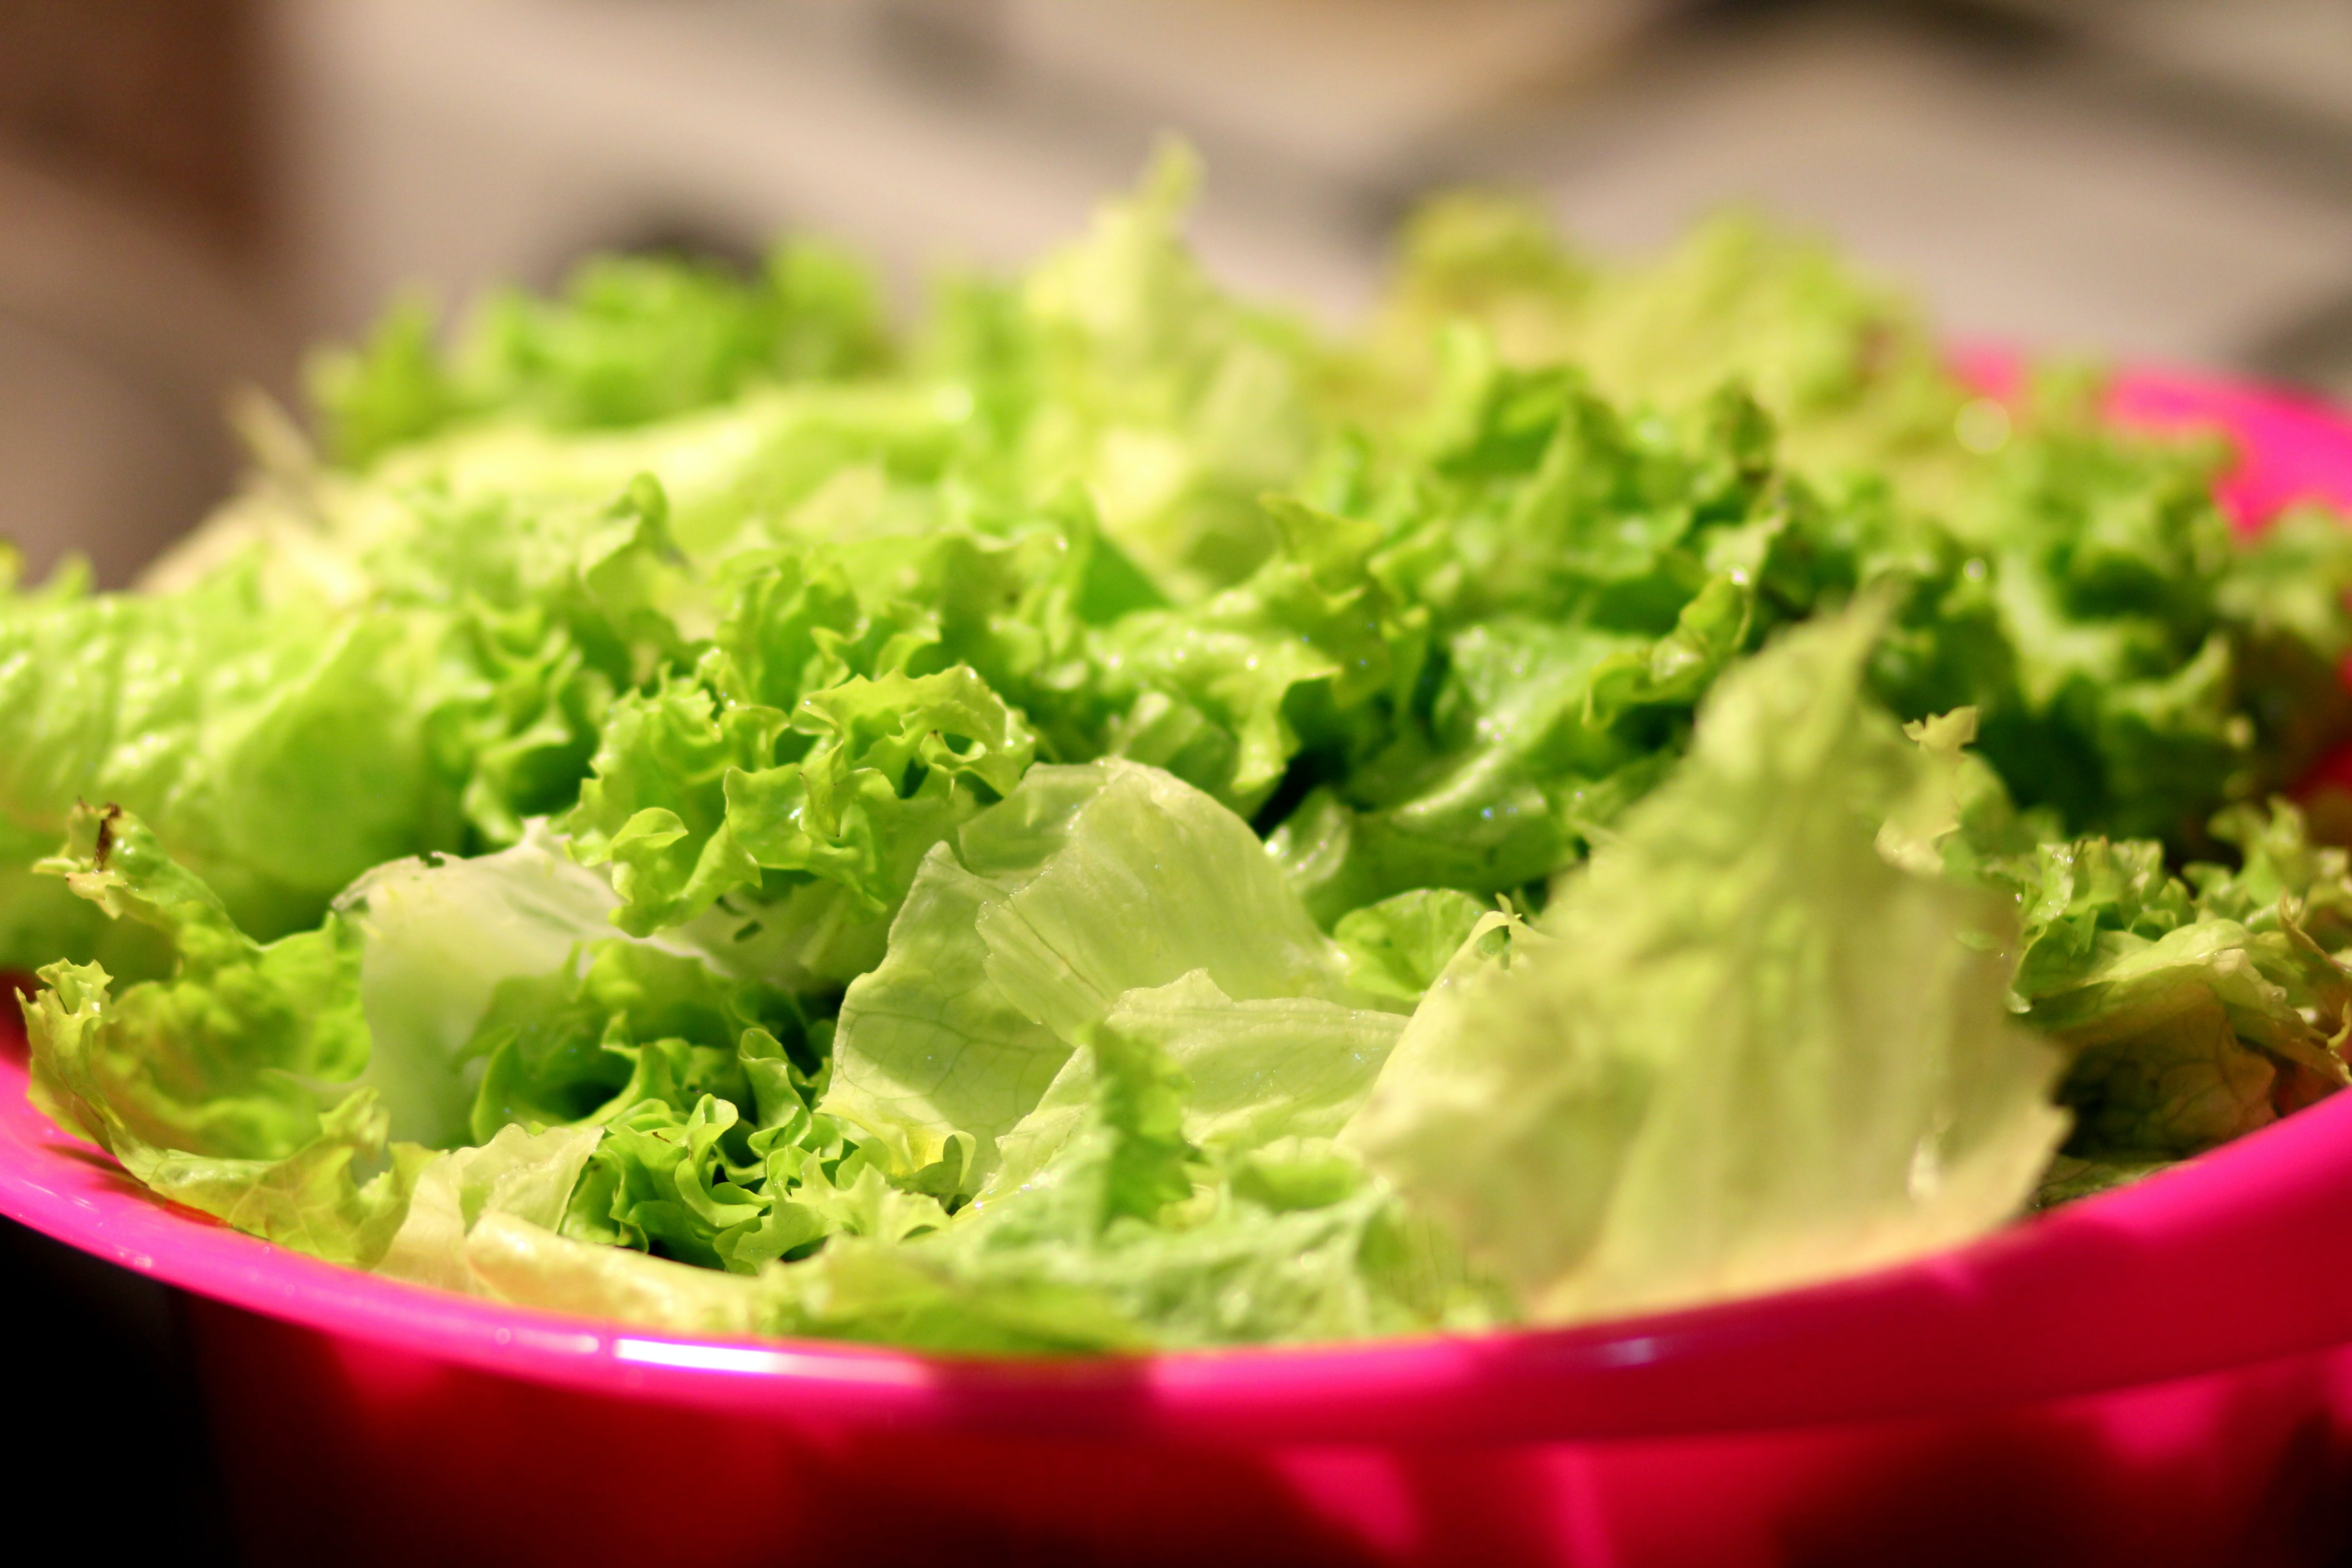 Green and White Lettuce